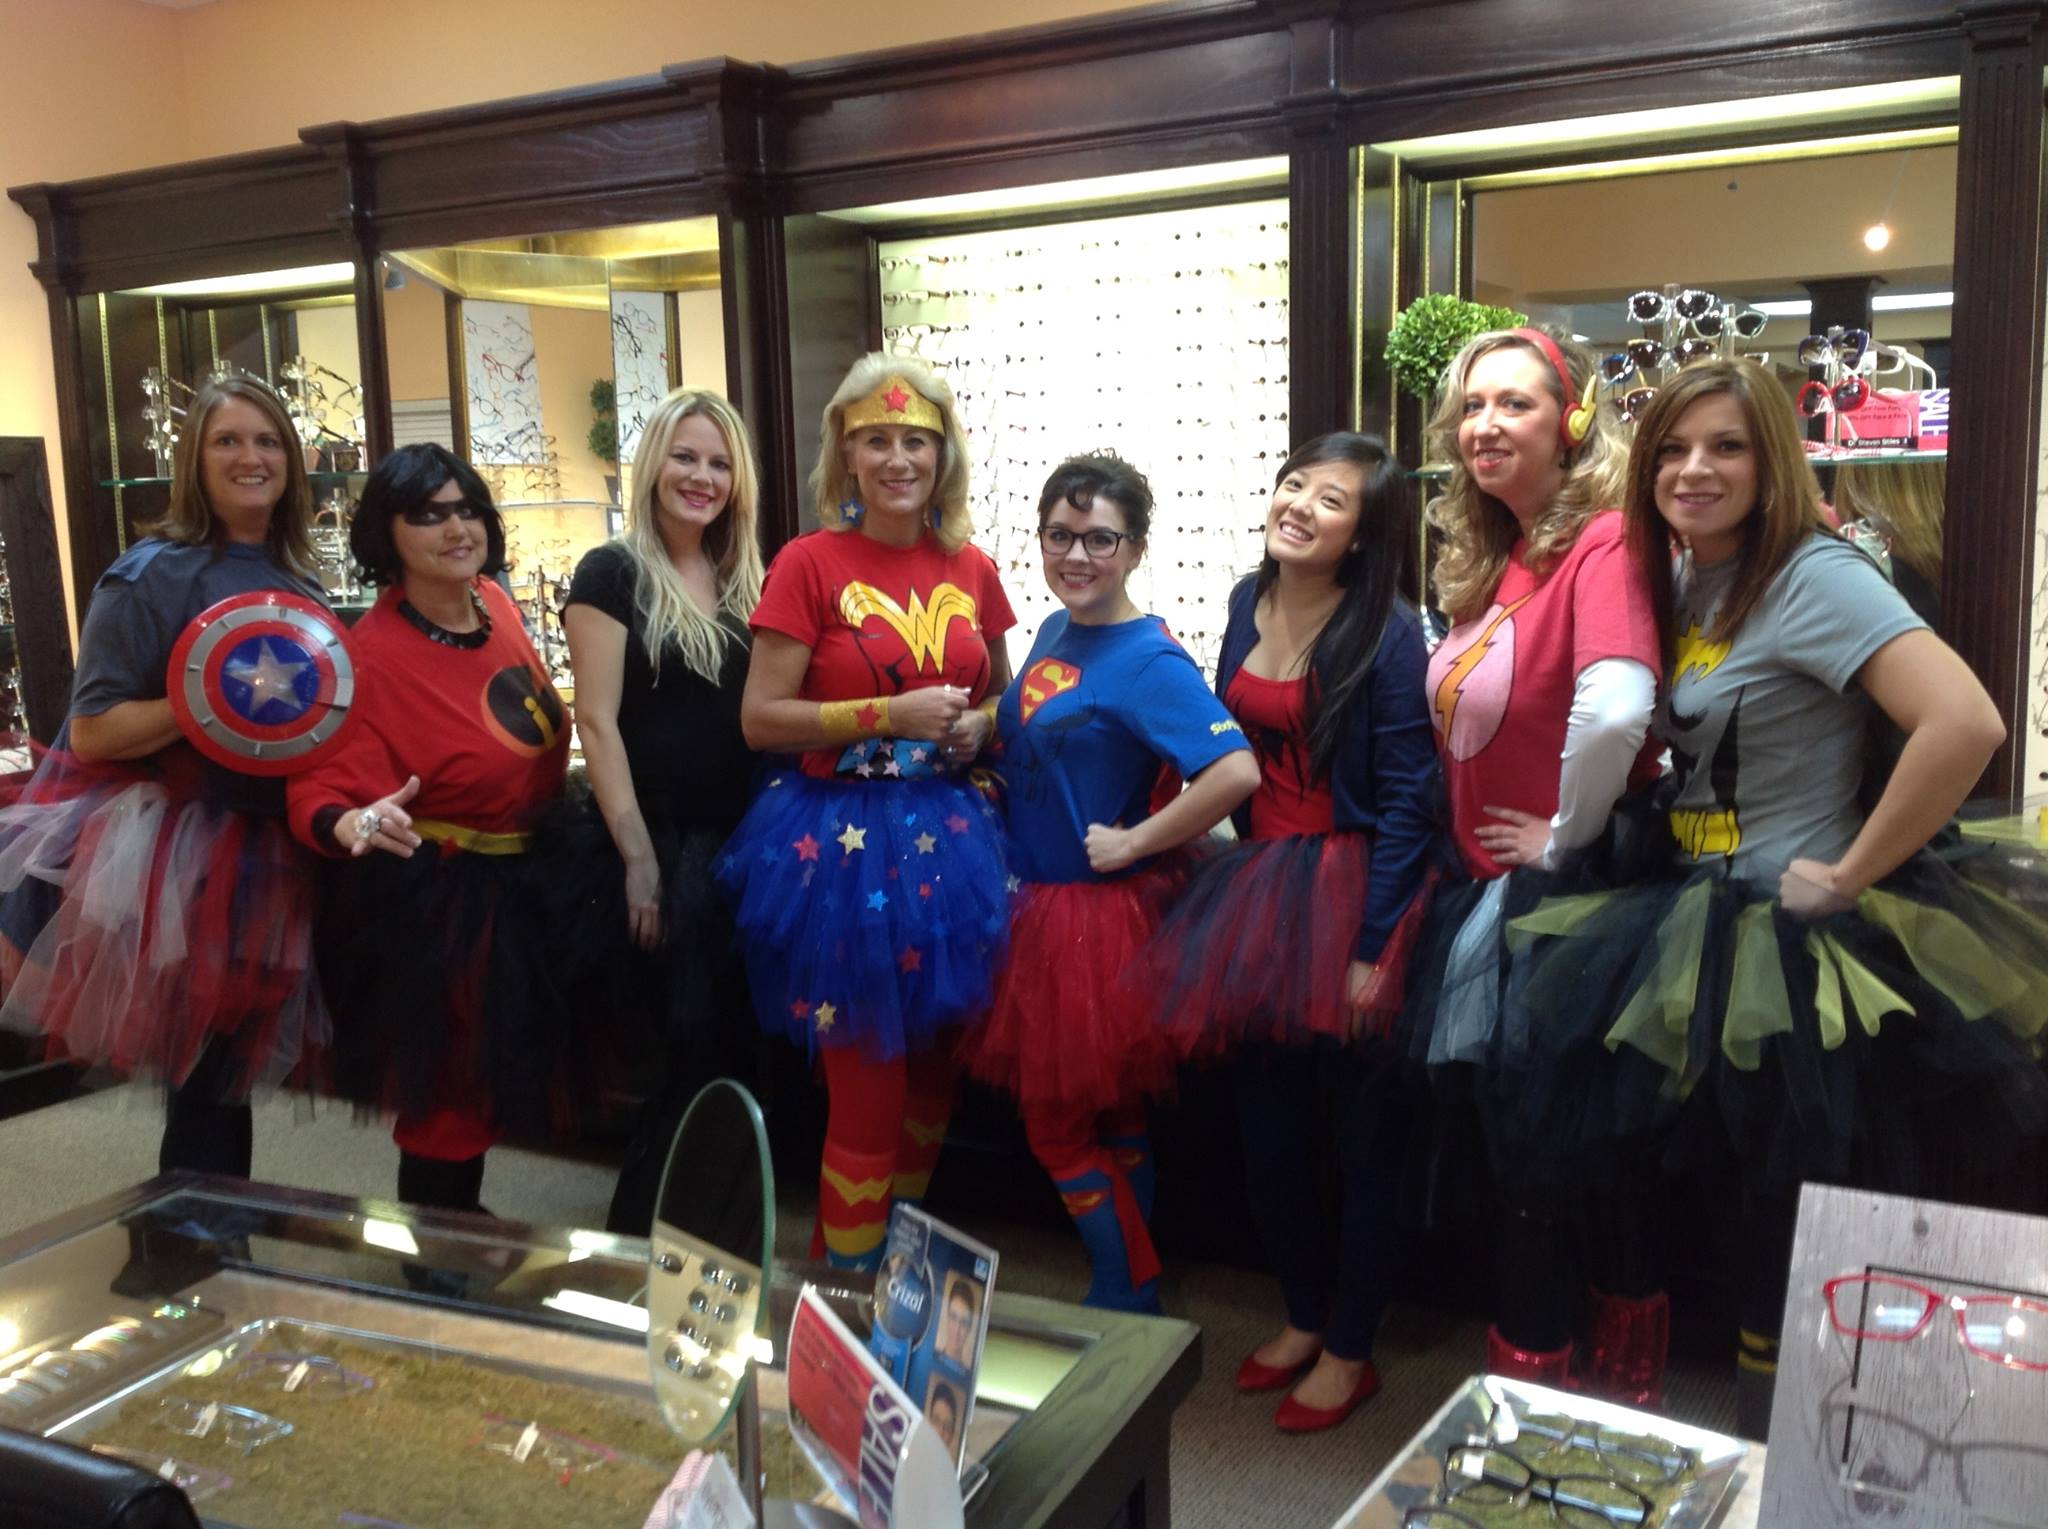 Dr.Steven Stiles Eyegroup staff. HAPPY HALLOWEEN!!!!